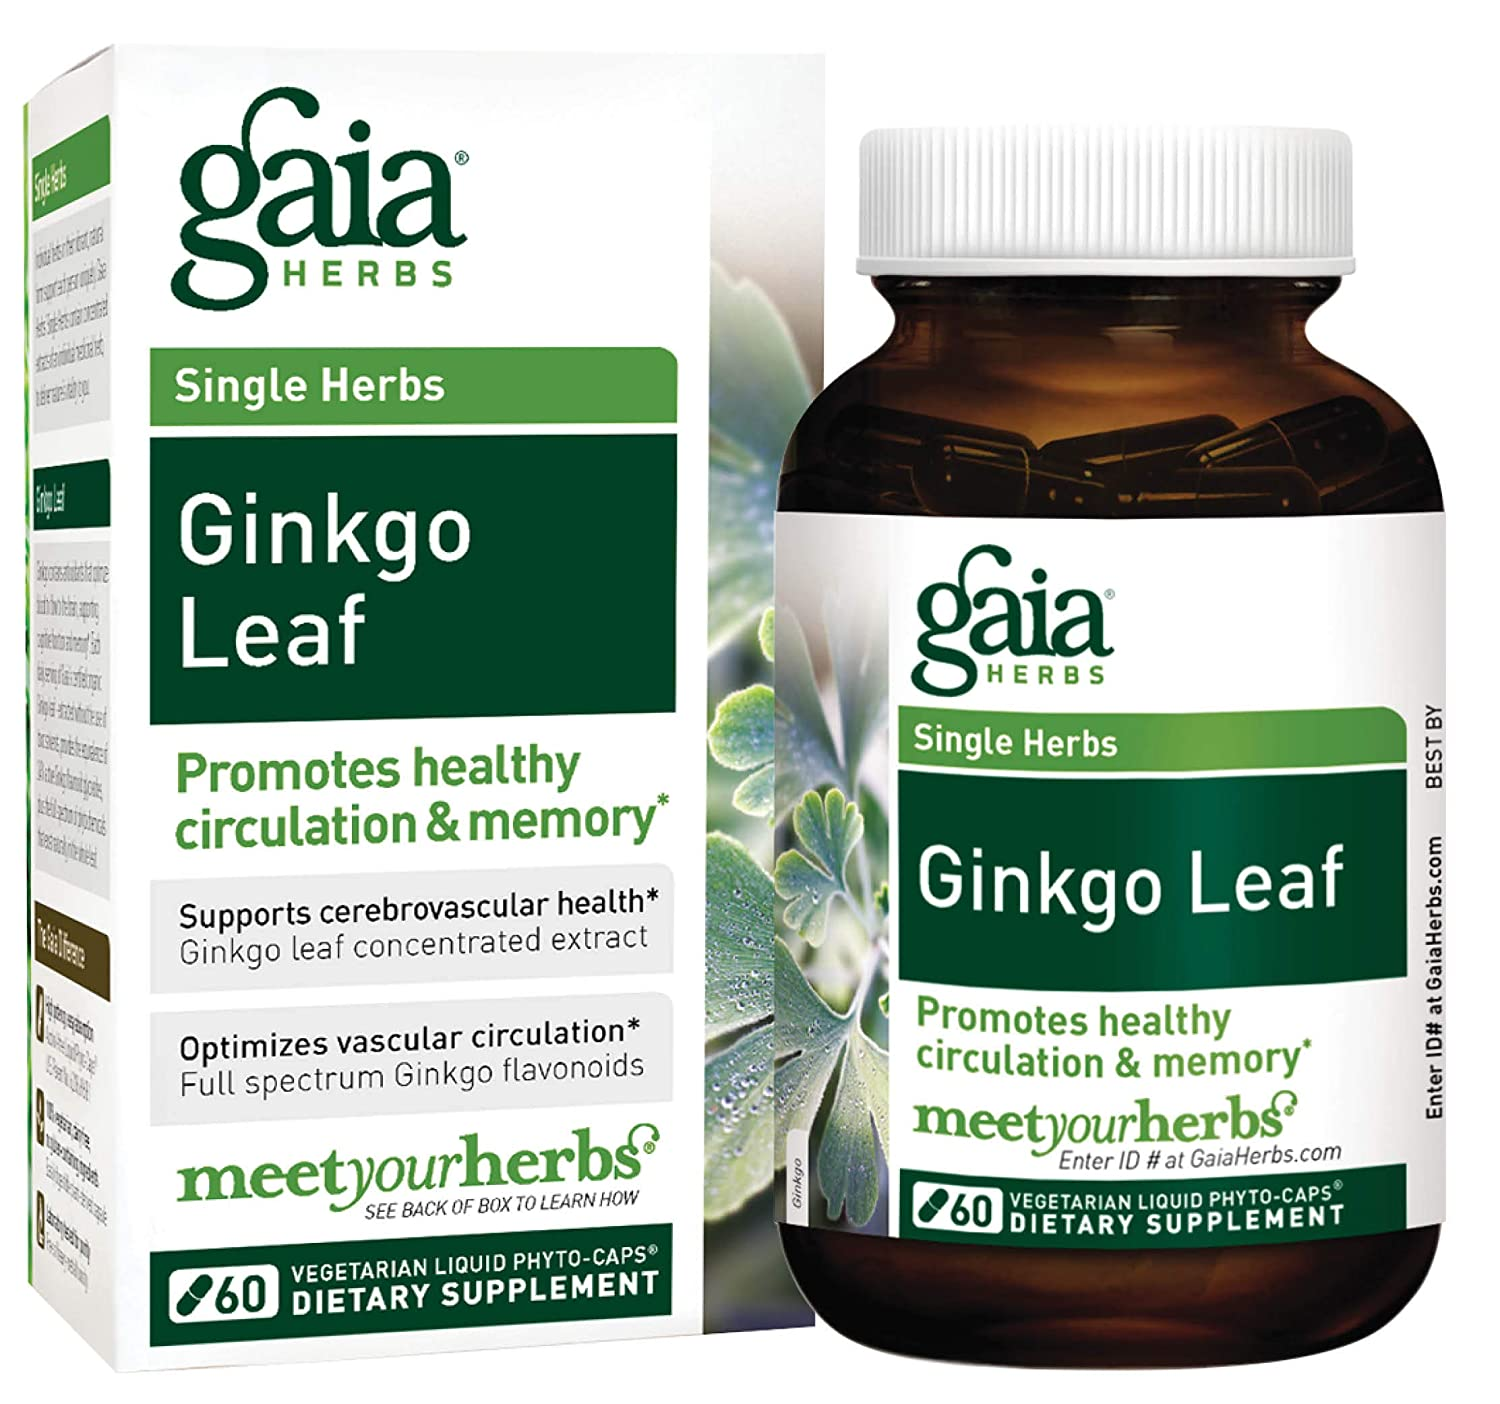 Gaia Herbs Ginkgo Leaf, Vegan Liquid Capsules, 60 Count – Daily Brain Health and Mental Focus Supplement with Antioxidants, Organic Ginkgo Biloba 1380mg Per Serving